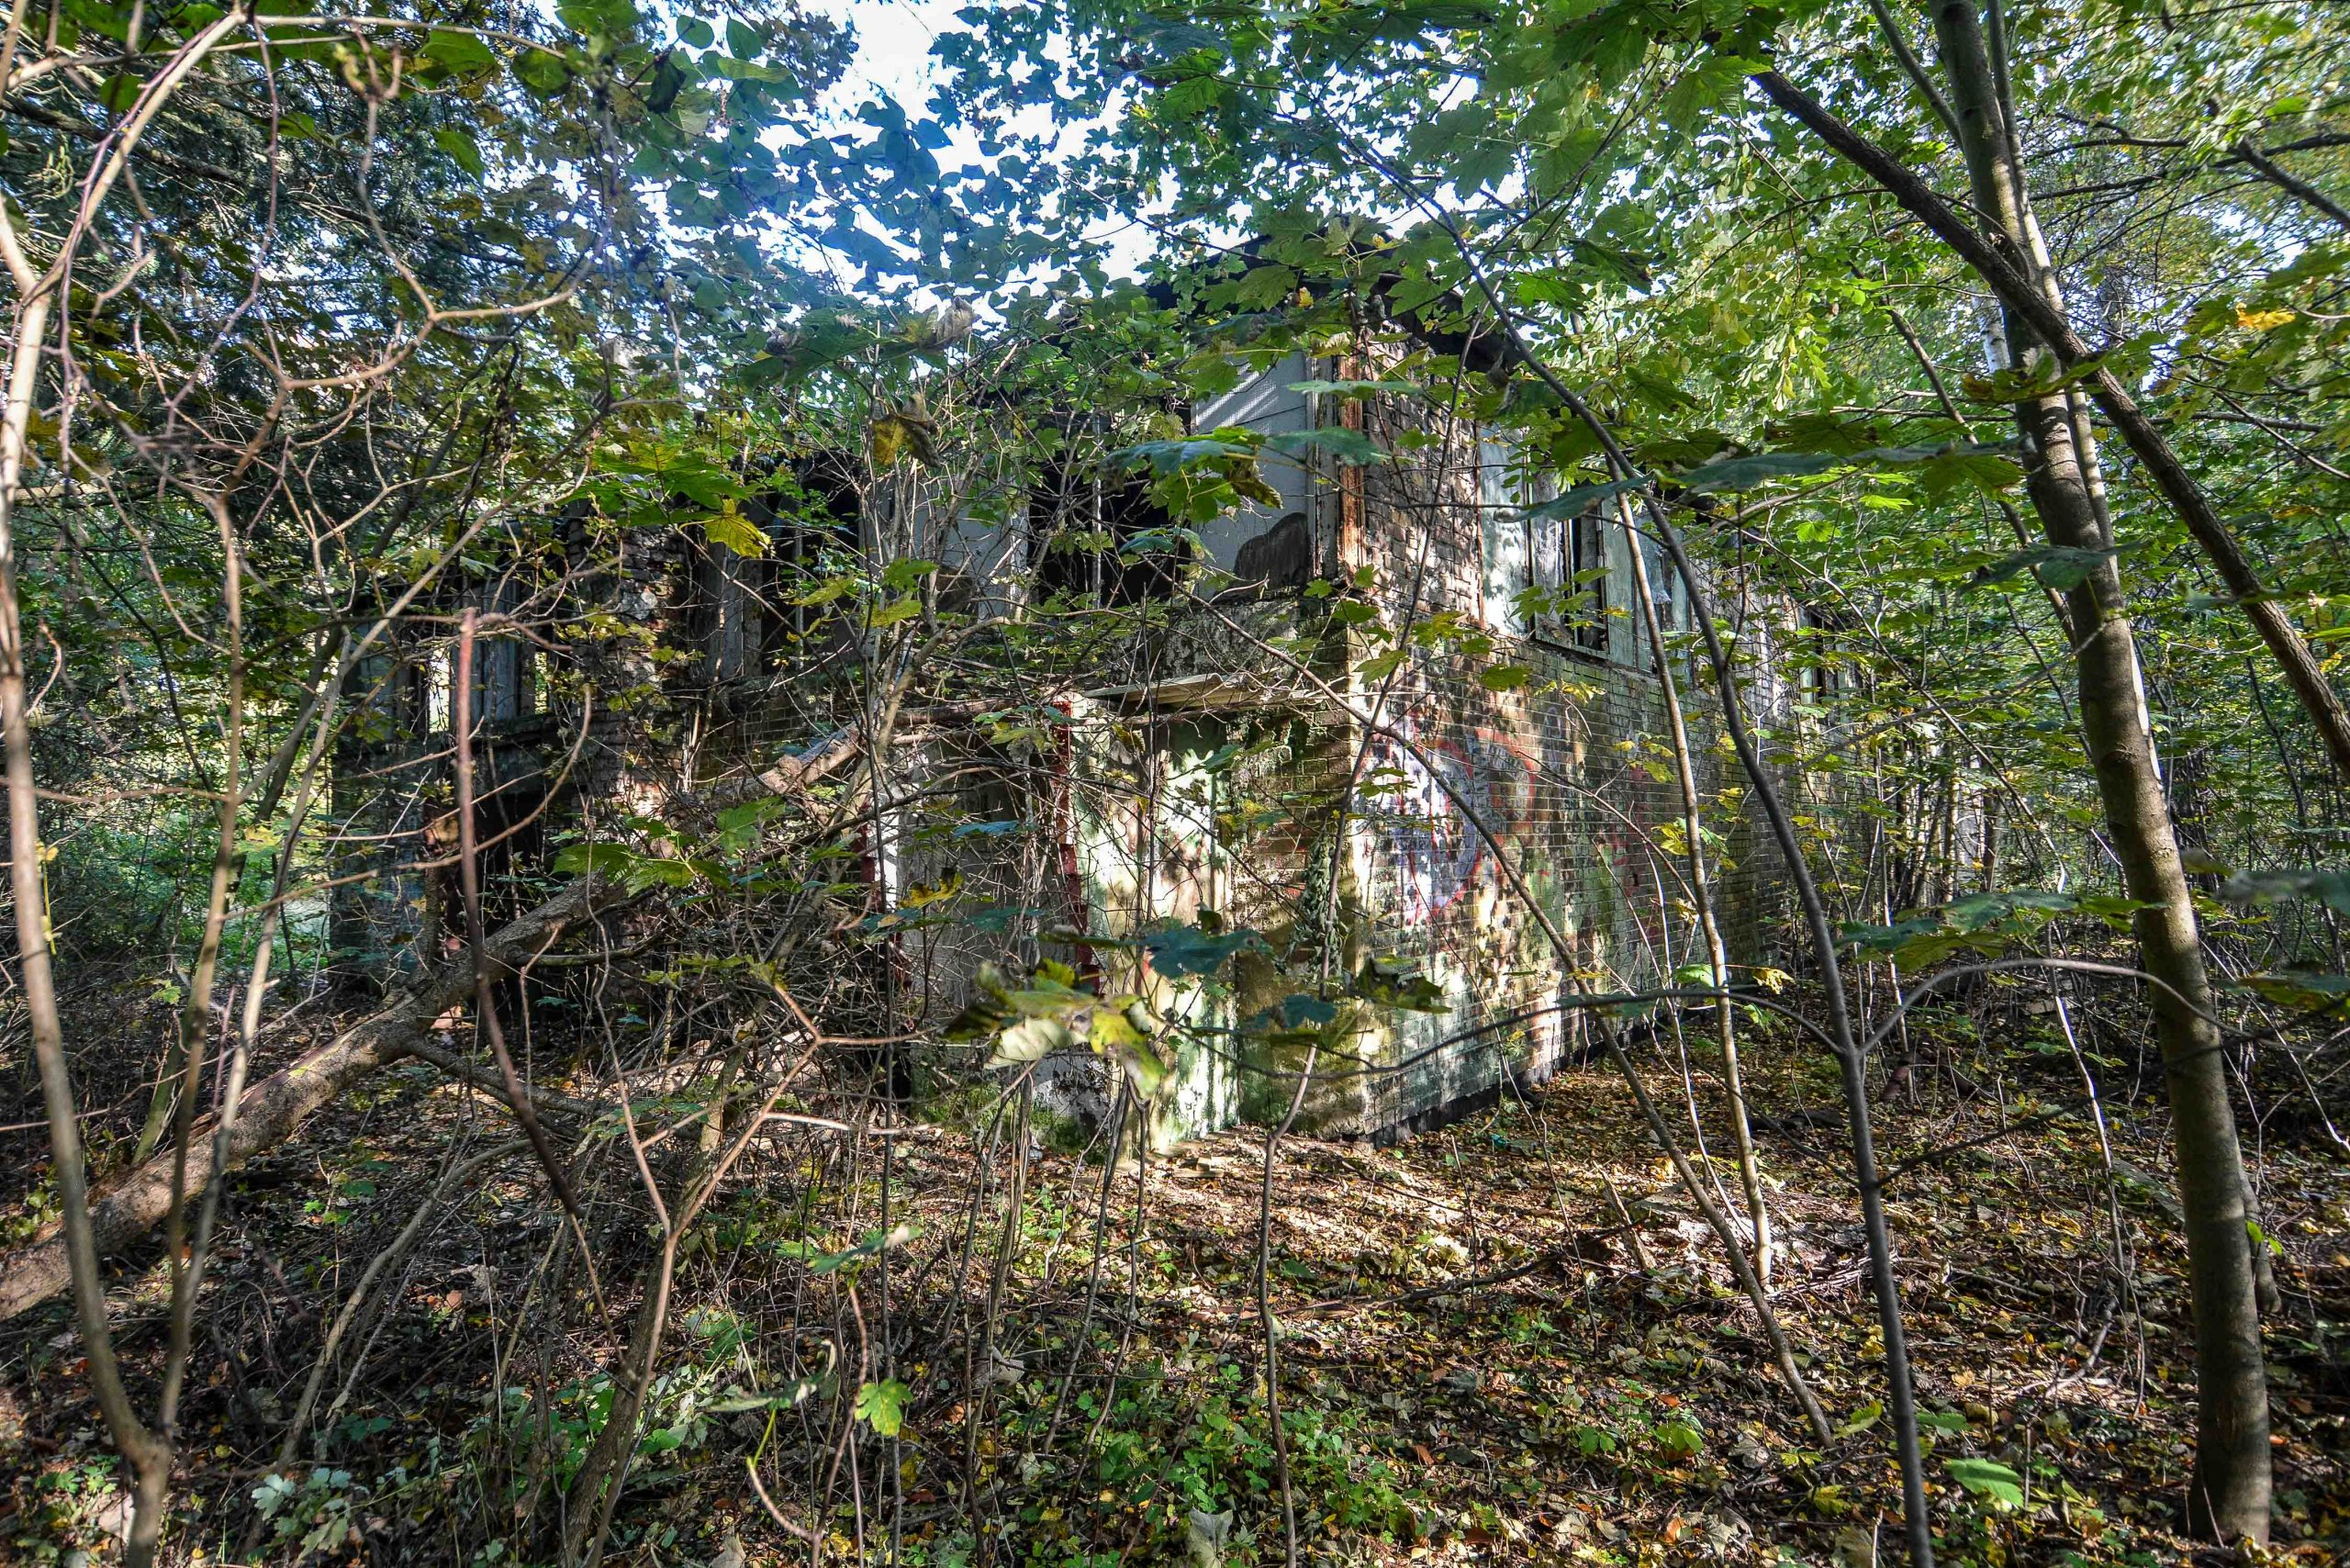 overgrown building soviet red army flugplatz oranienburg urbex abandoned lost places brandenburg